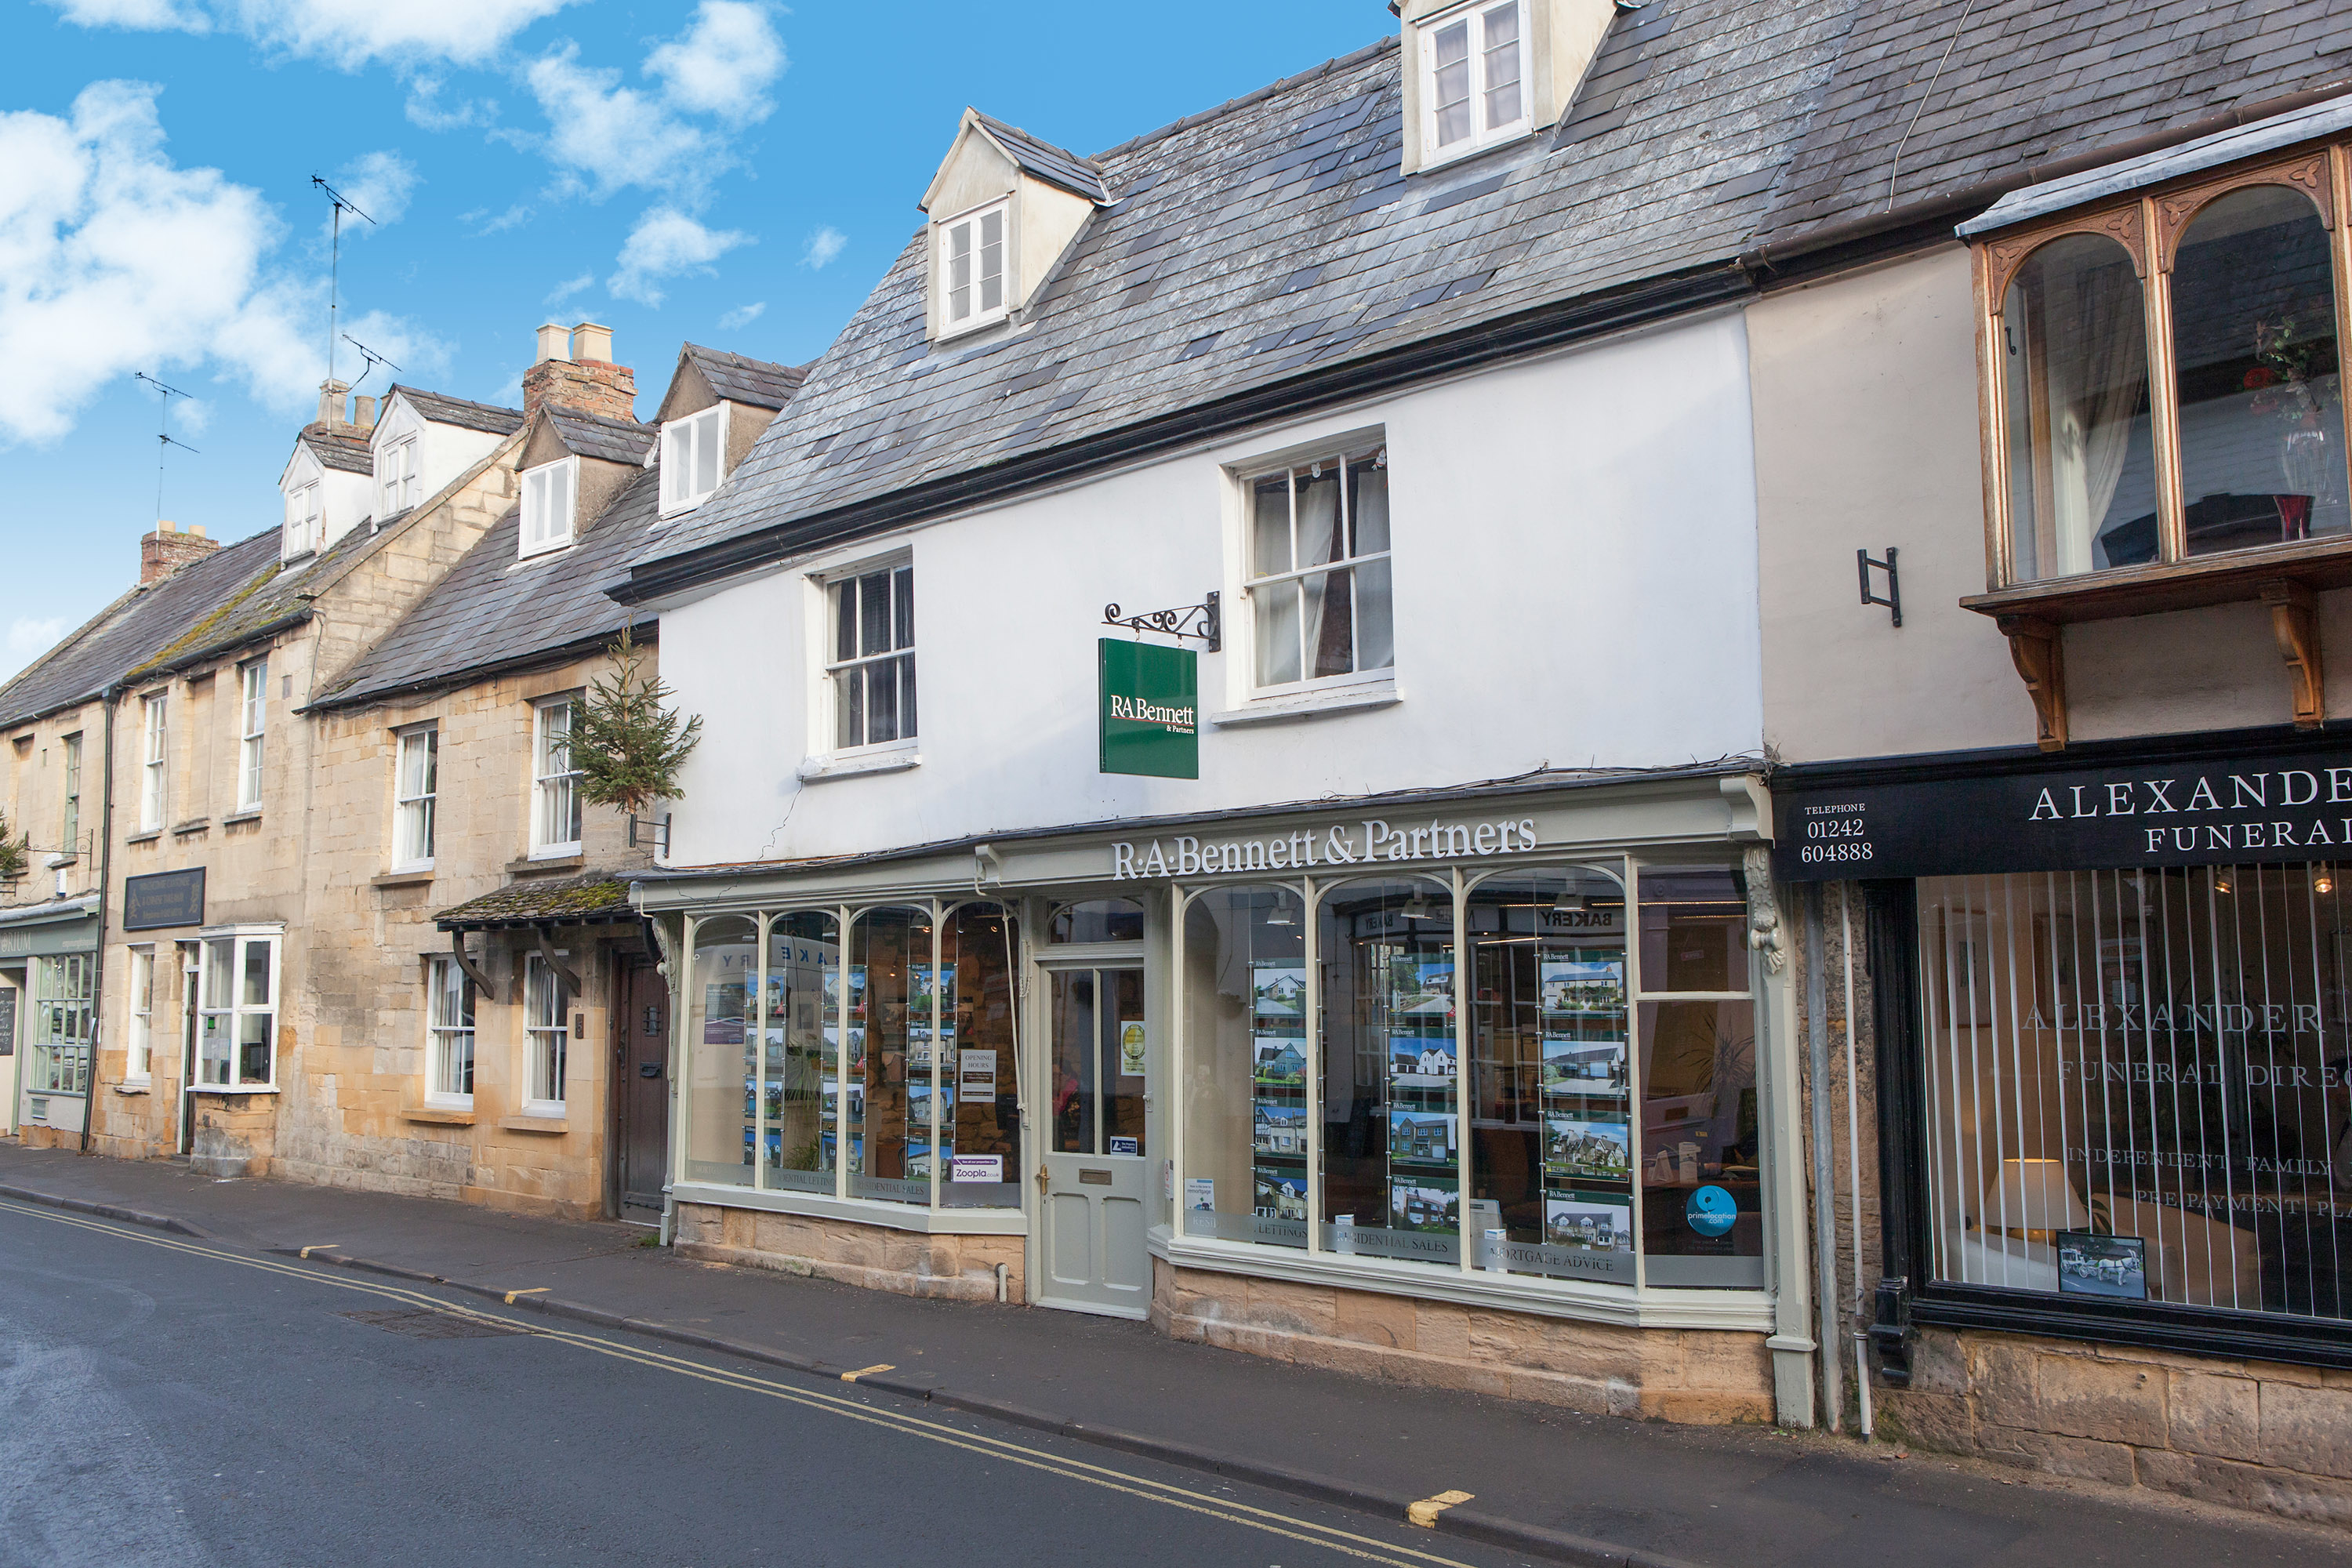 R. A. Bennett & Partners Estate Agents Winchcombe